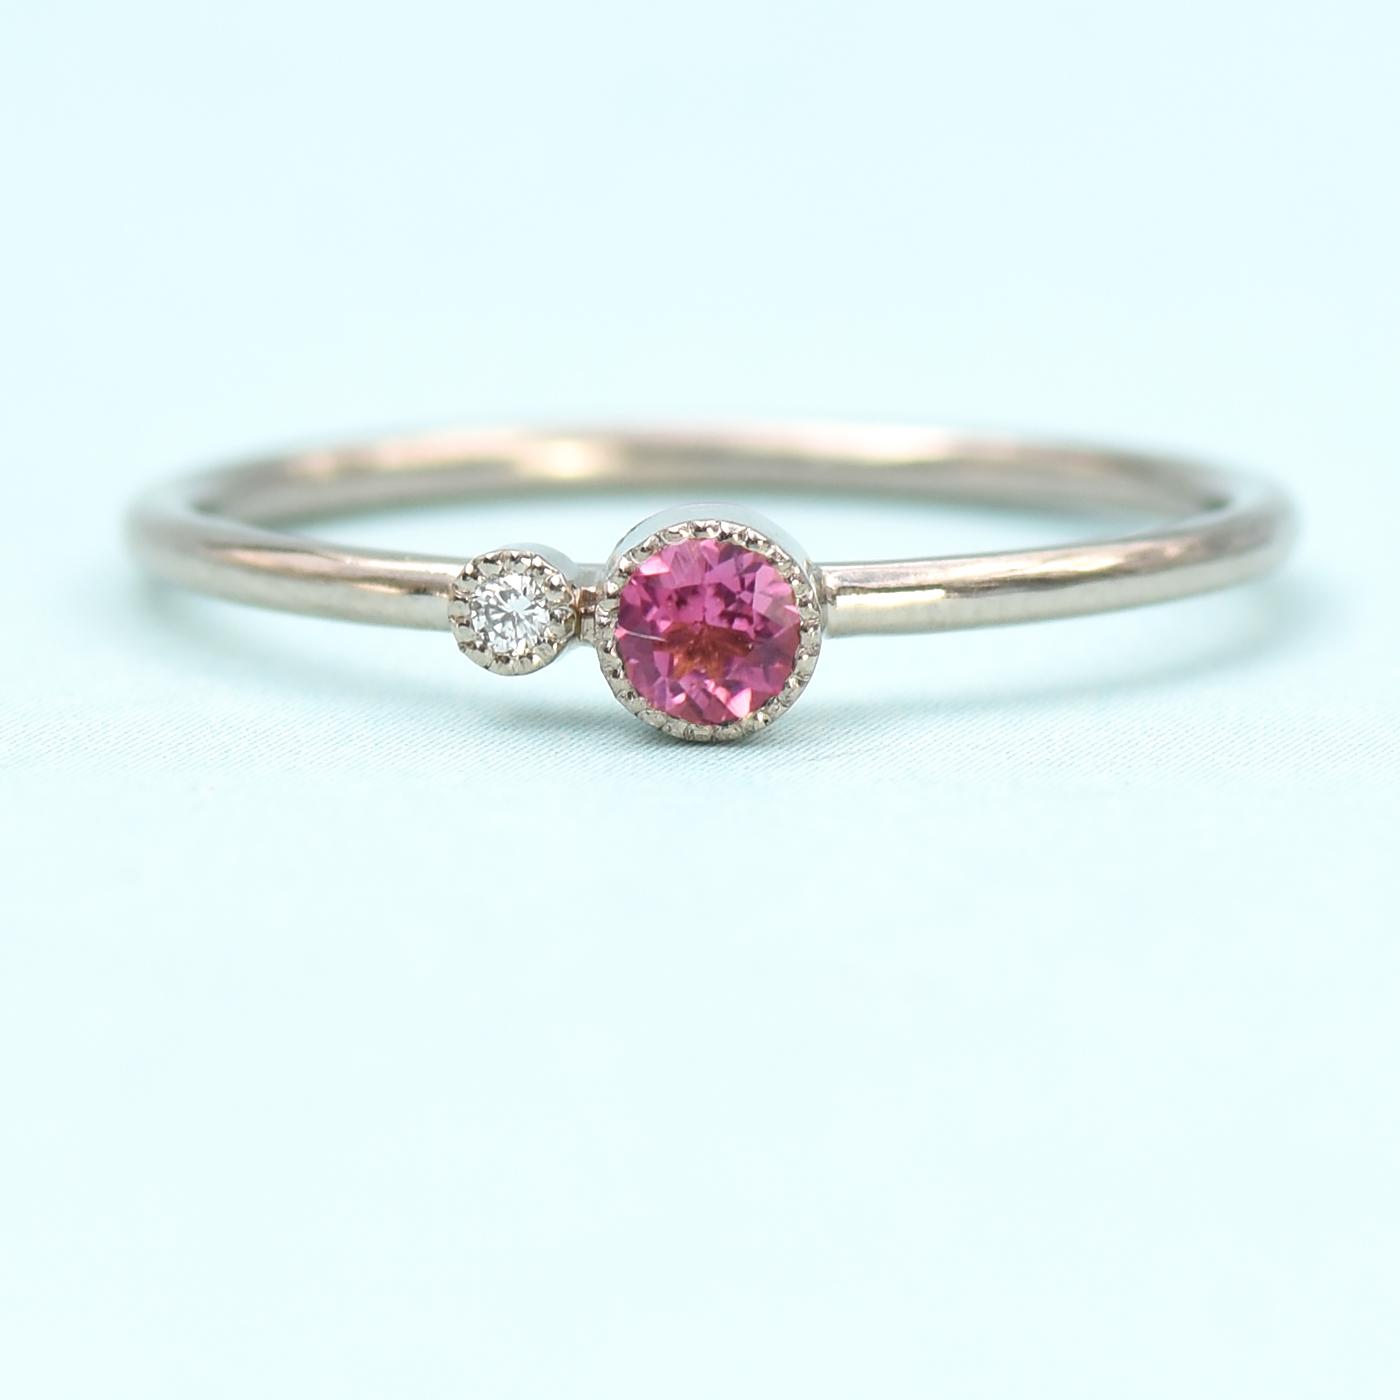 0a66225620783 18ct White Gold Diamond & Pink Tourmaline Ring (October Birthstone)